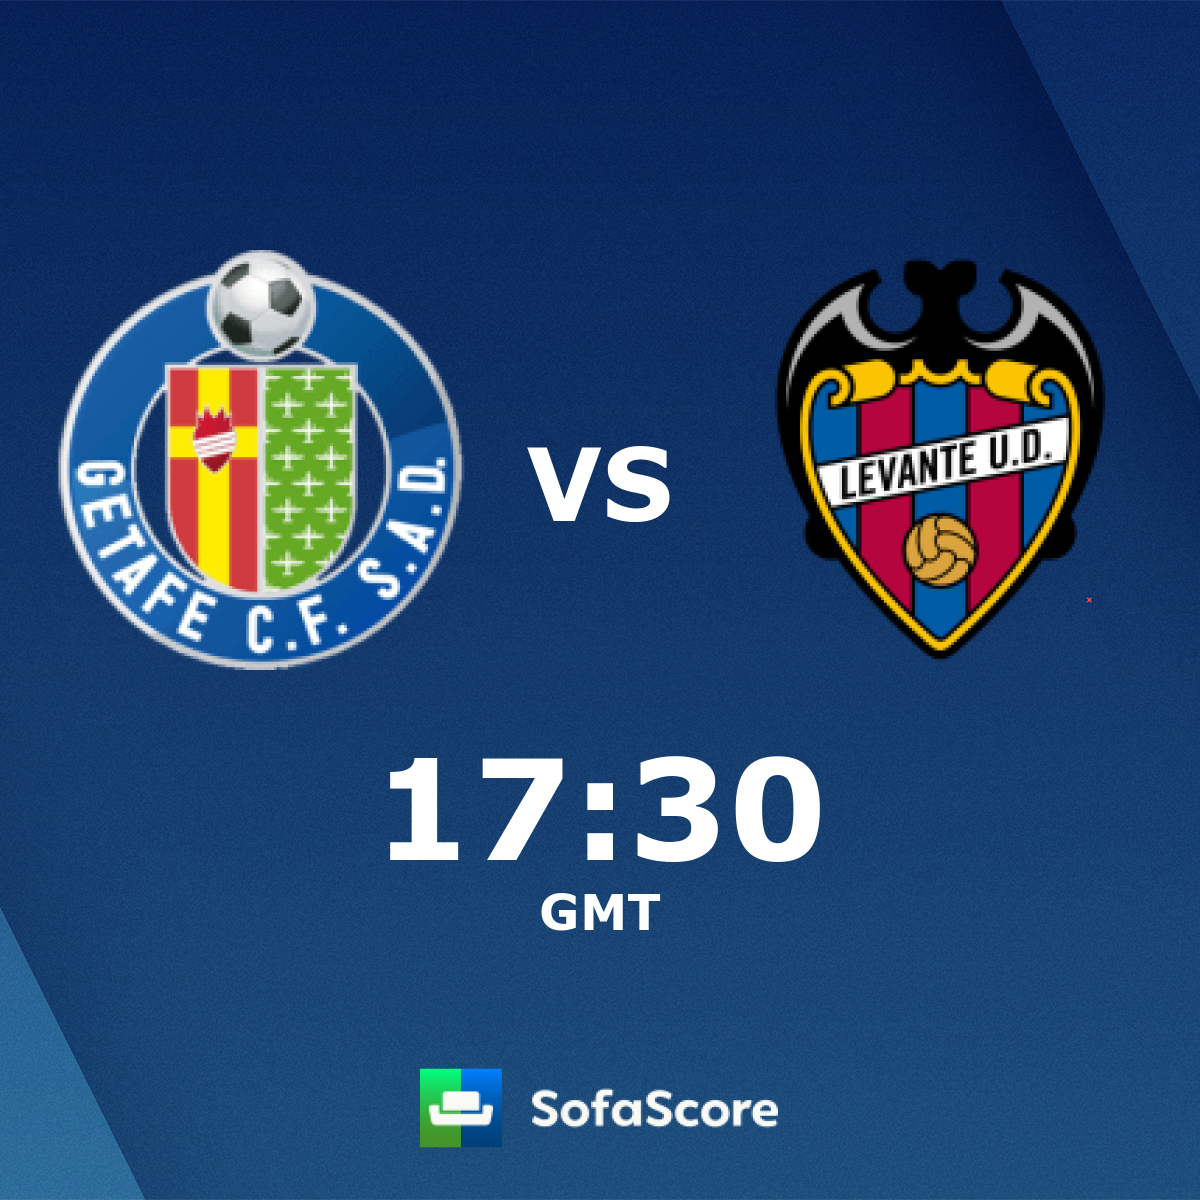 Getafe Levante live score, video stream and H2H results - SofaScore